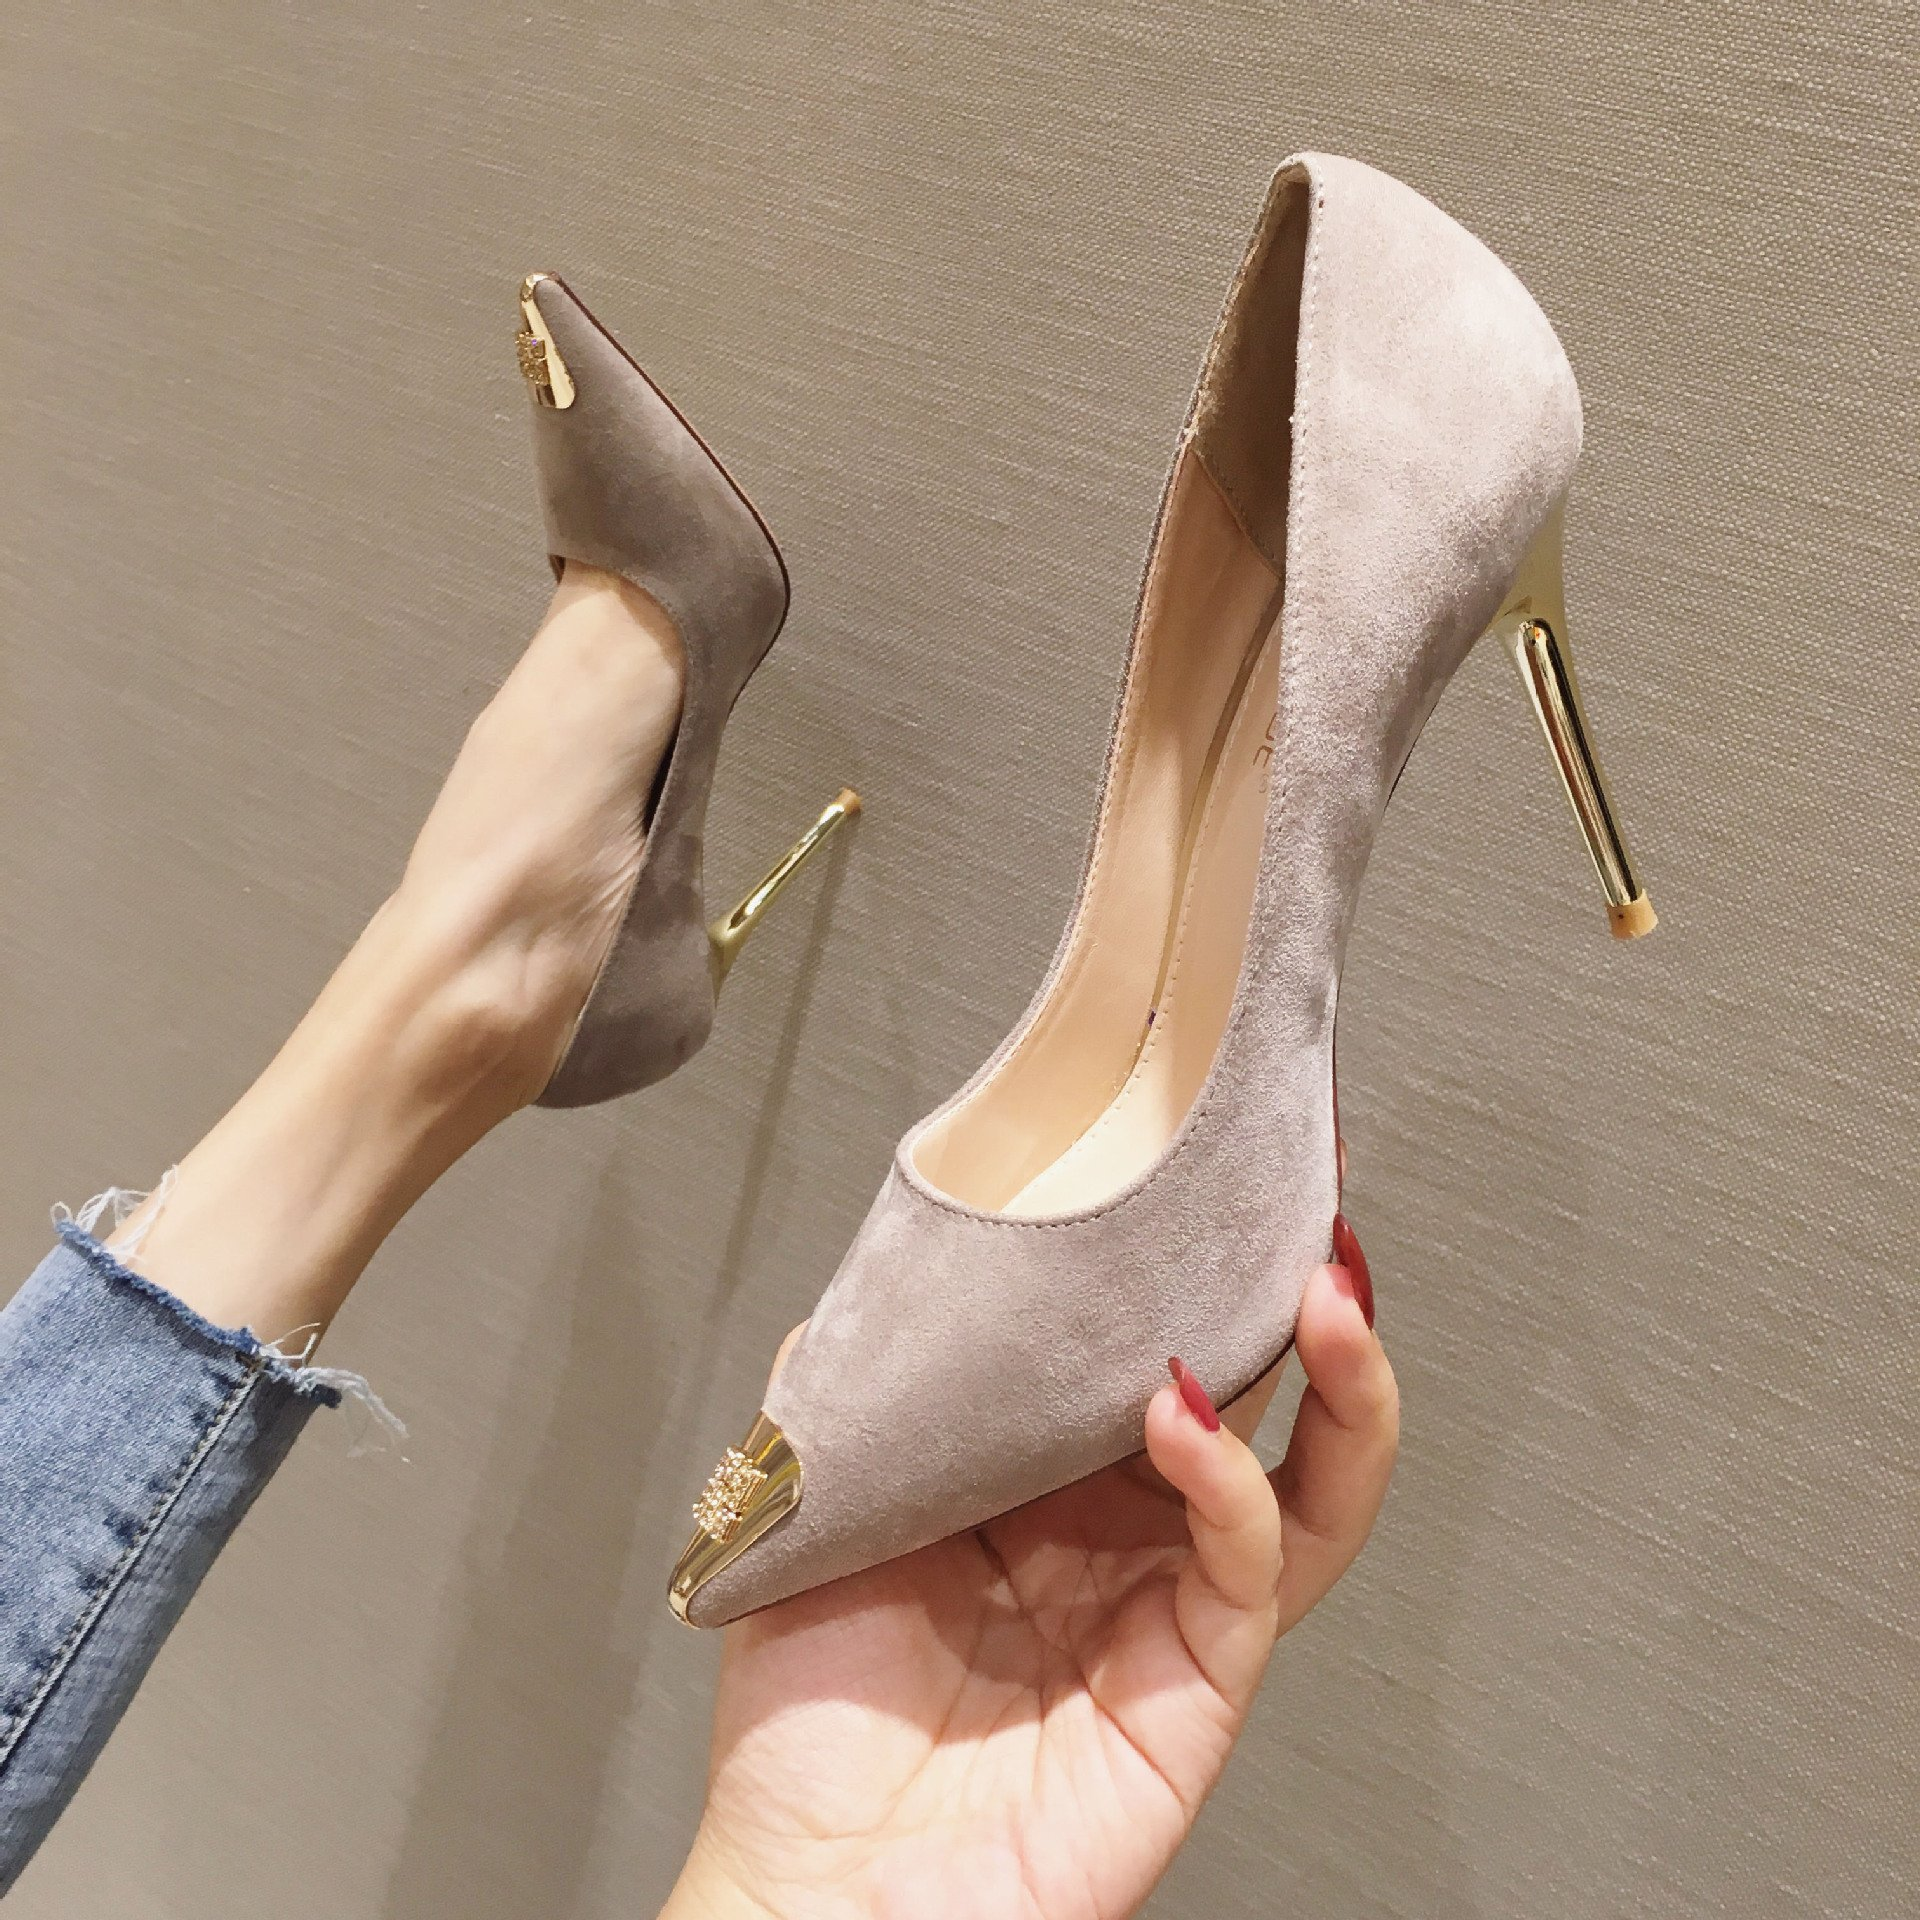 Trendy Women High Heels Tactical Shoes Cork Wedge Heels Fish Shoes Comfortable Dress Shoes Silver Court Shoes Coral High Heels